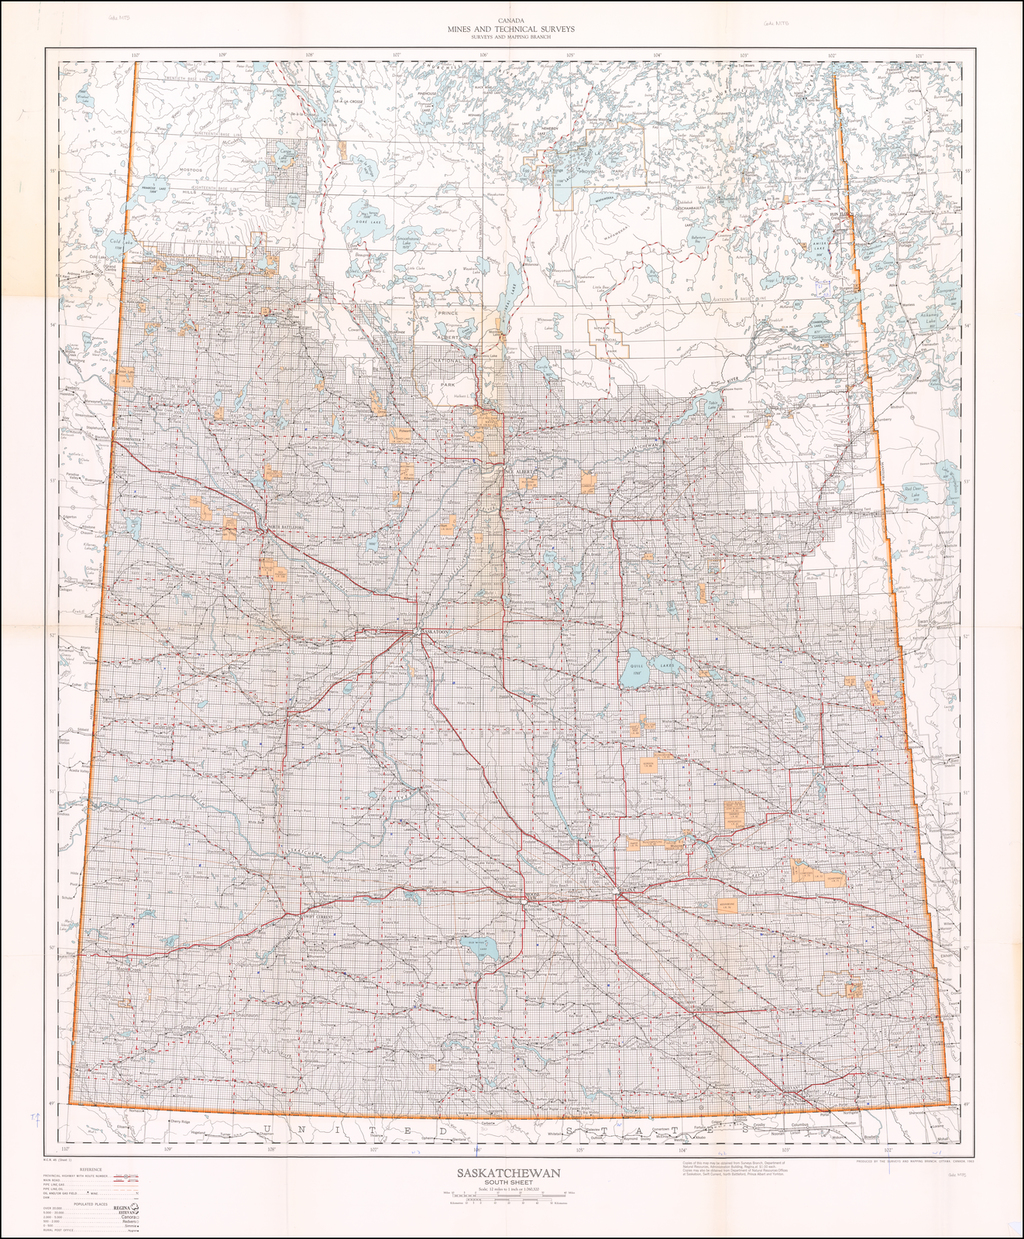 Saskatchewan South Sheet By Department of Natural Resources